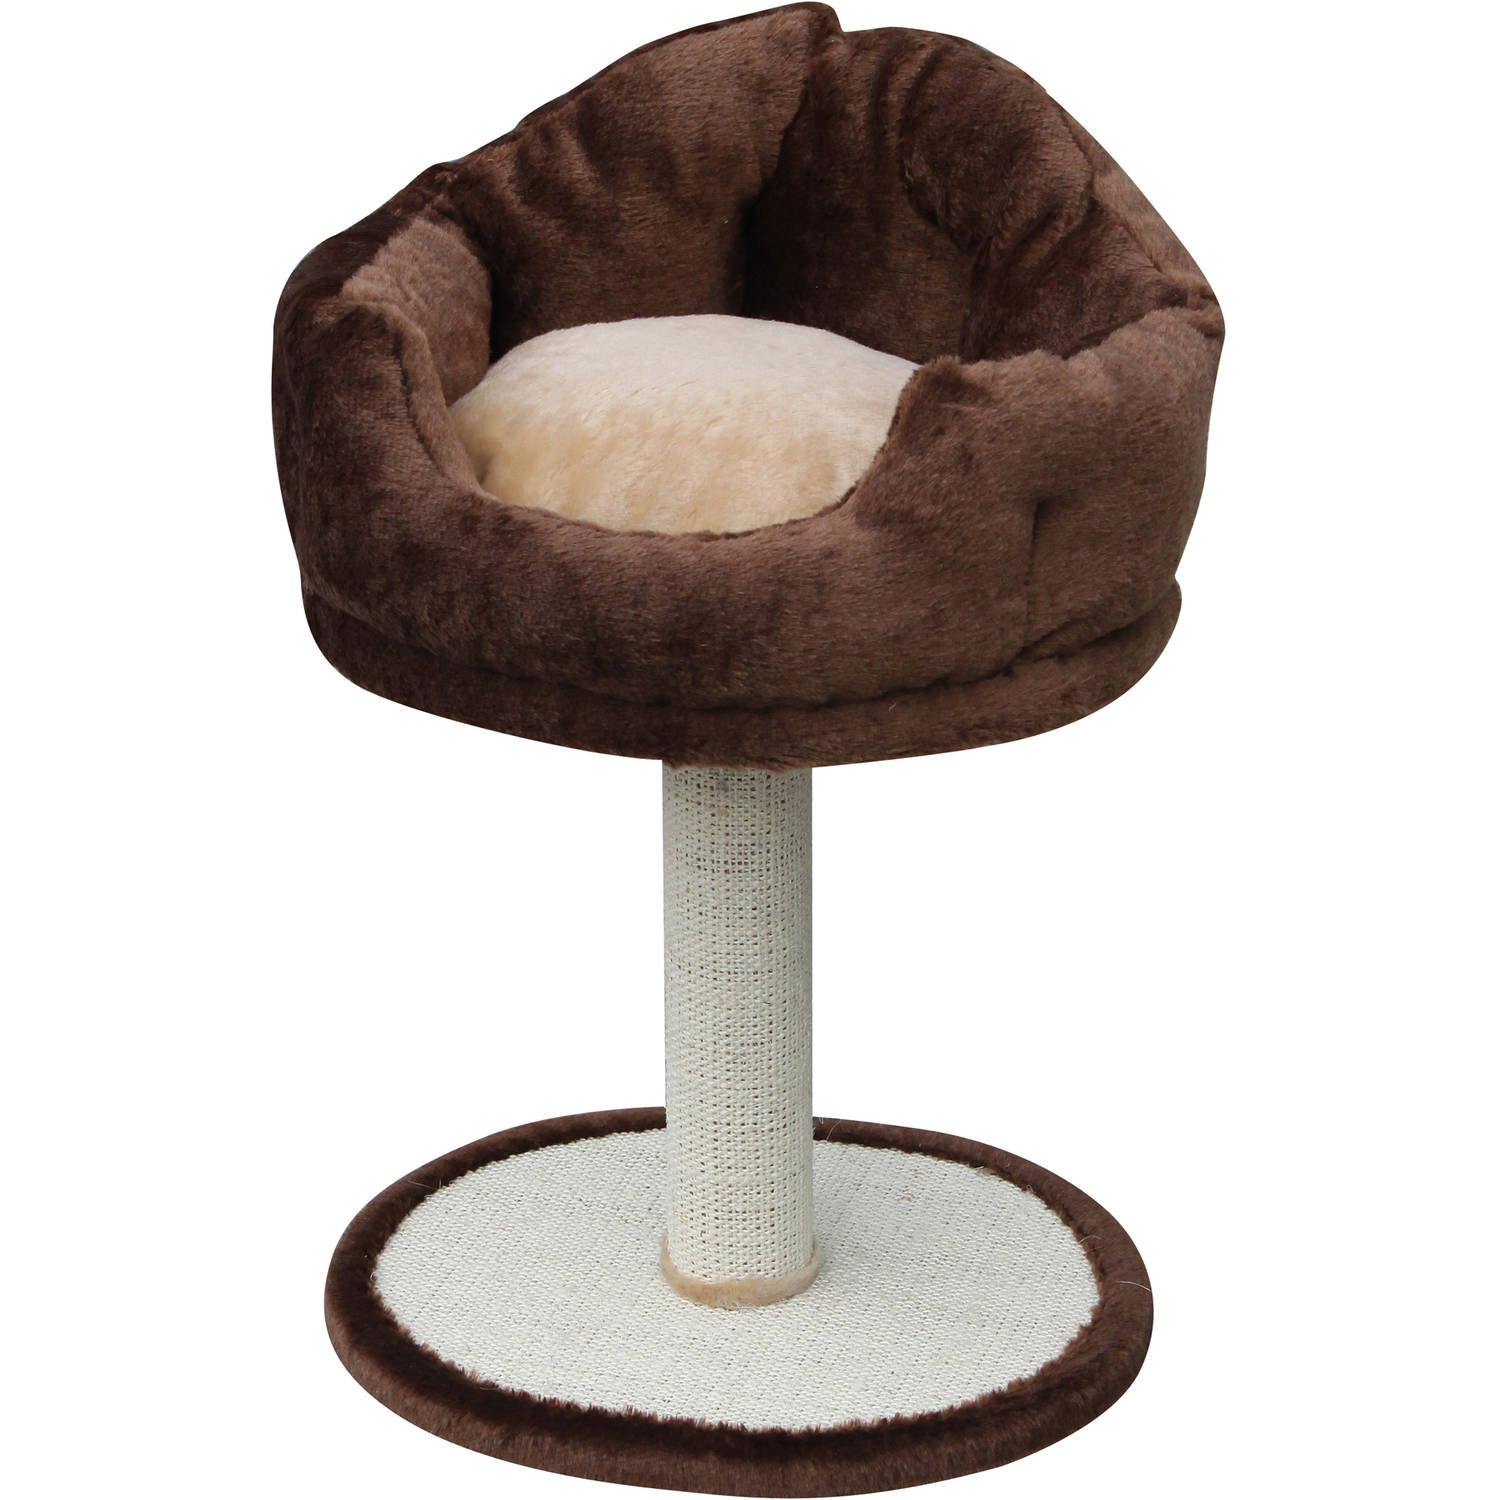 Petpals Group Nook Soft Fleece Bed with Sisal Post Scratcher